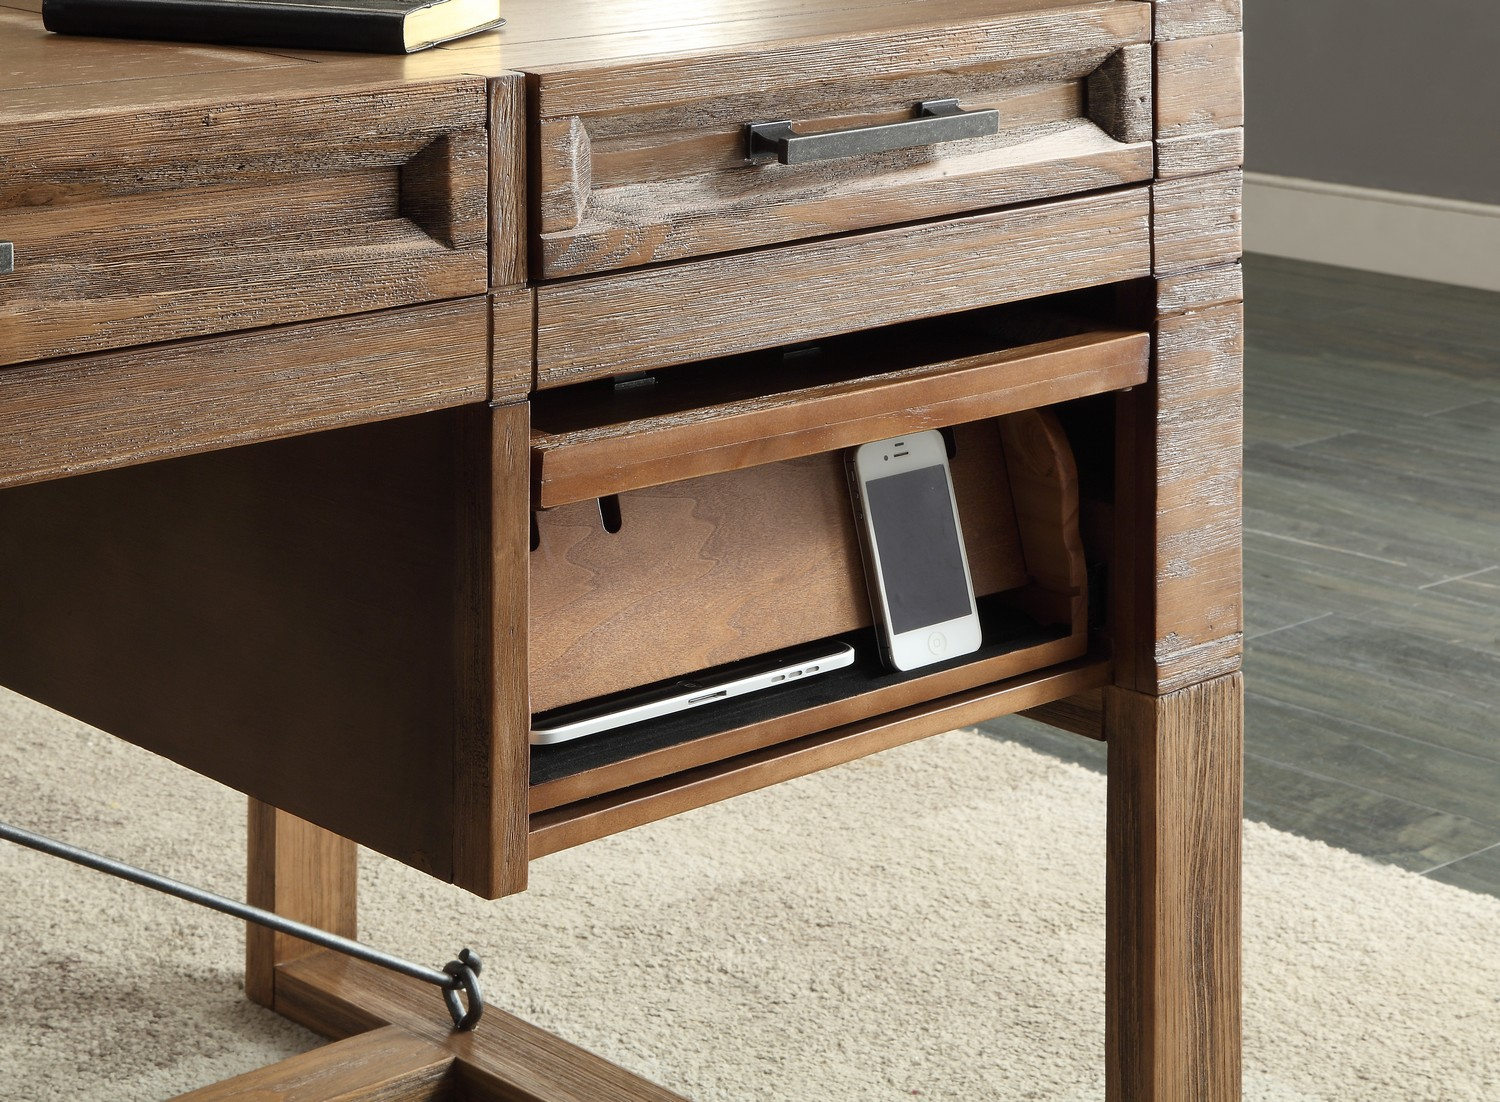 60 inch writing desk For even more home products visit our sister company, home styles with the latest in home furniture including kitchen, sunroom and outdoor collections, and convenient ready-to-assemble packaging and shipping, home styles has something for you.